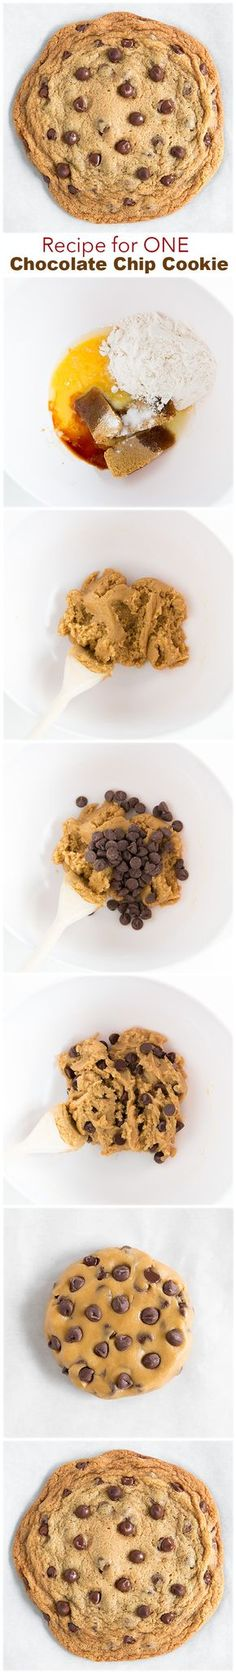 Easy recipe for ONE big Chocolate Chip Cookie   Cooking Classy